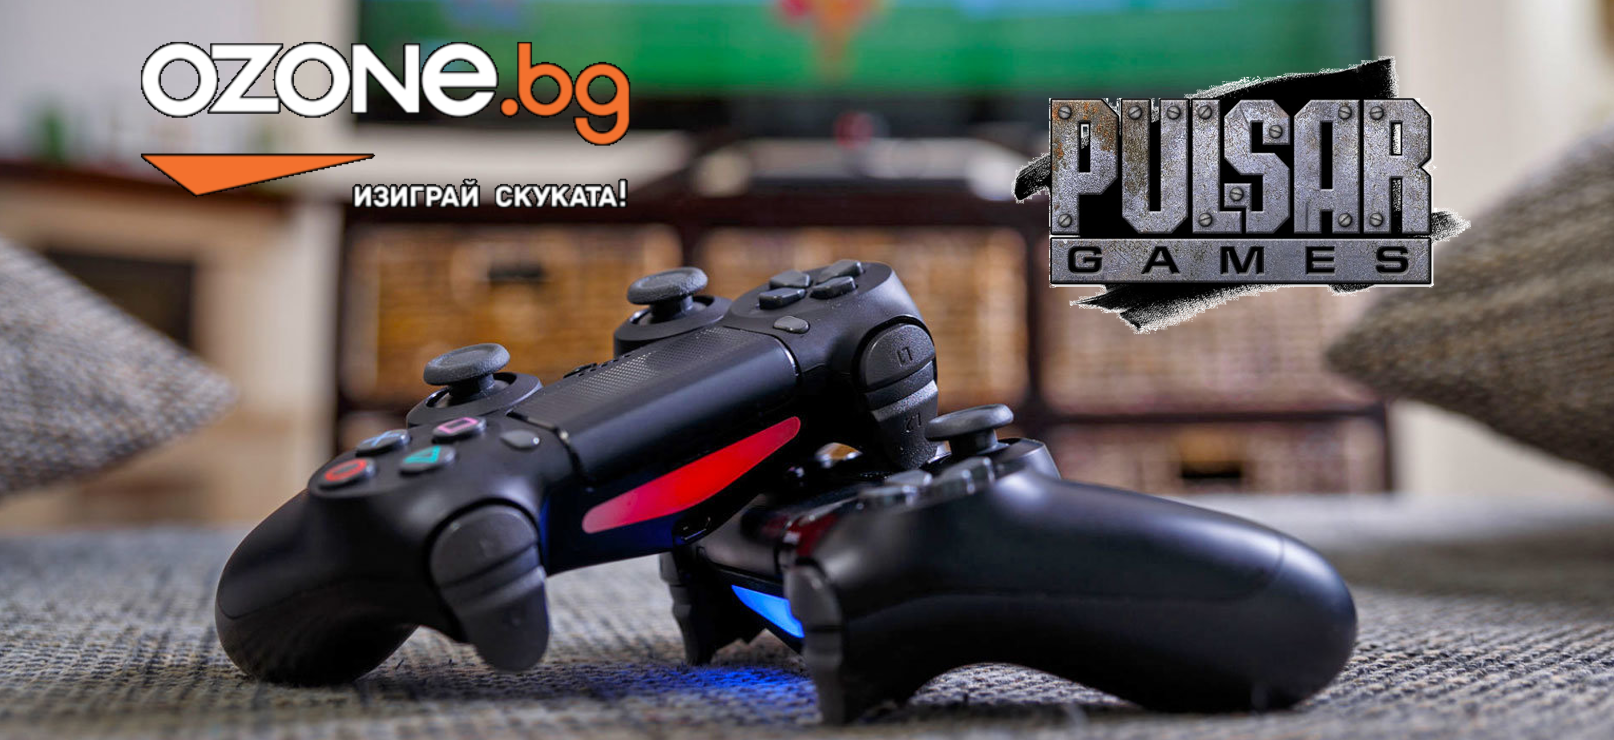 The Bulgarian Online Retailer Ozone.bg Acquired the Biggest Local Gaming Store Chain Pulsar